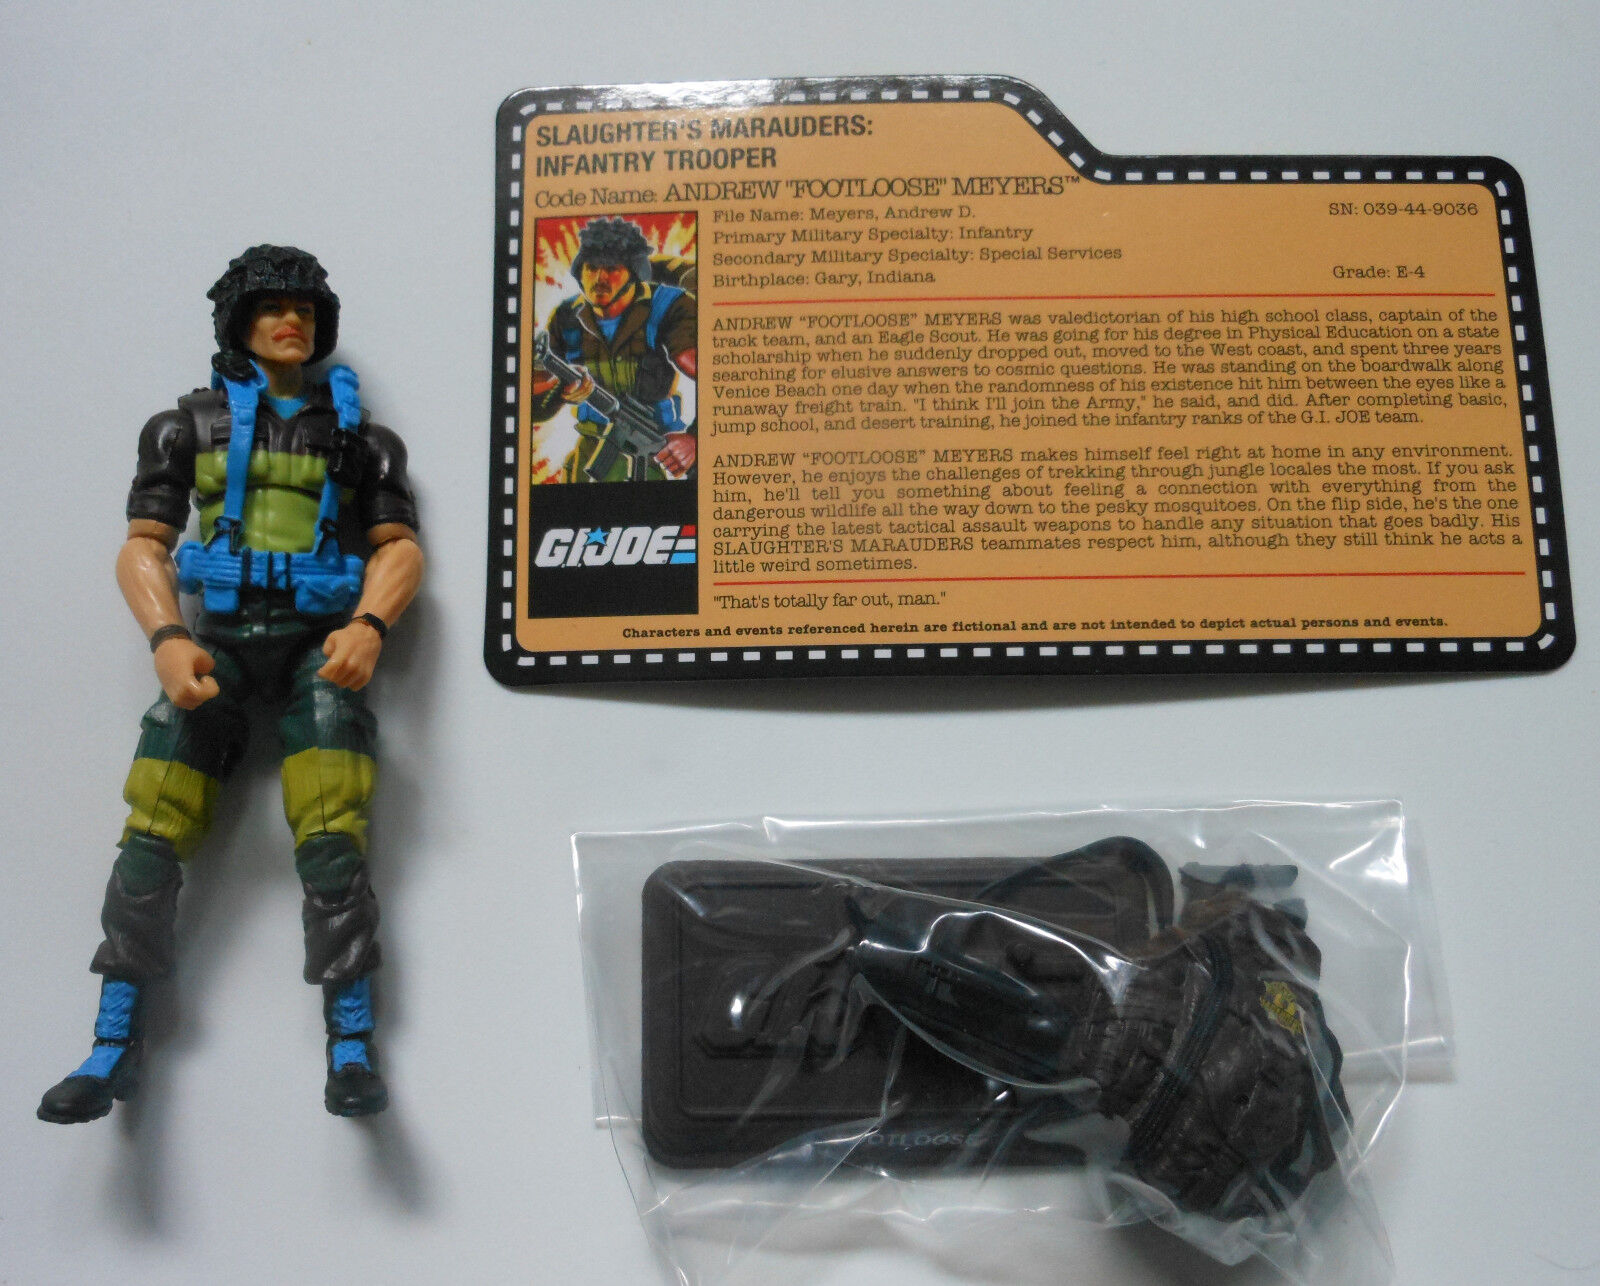 FOOTLOOSE GI Joe Convention Convention Convention 2018 Exclusive Boxed Set Loose Mint Complete 7d3540